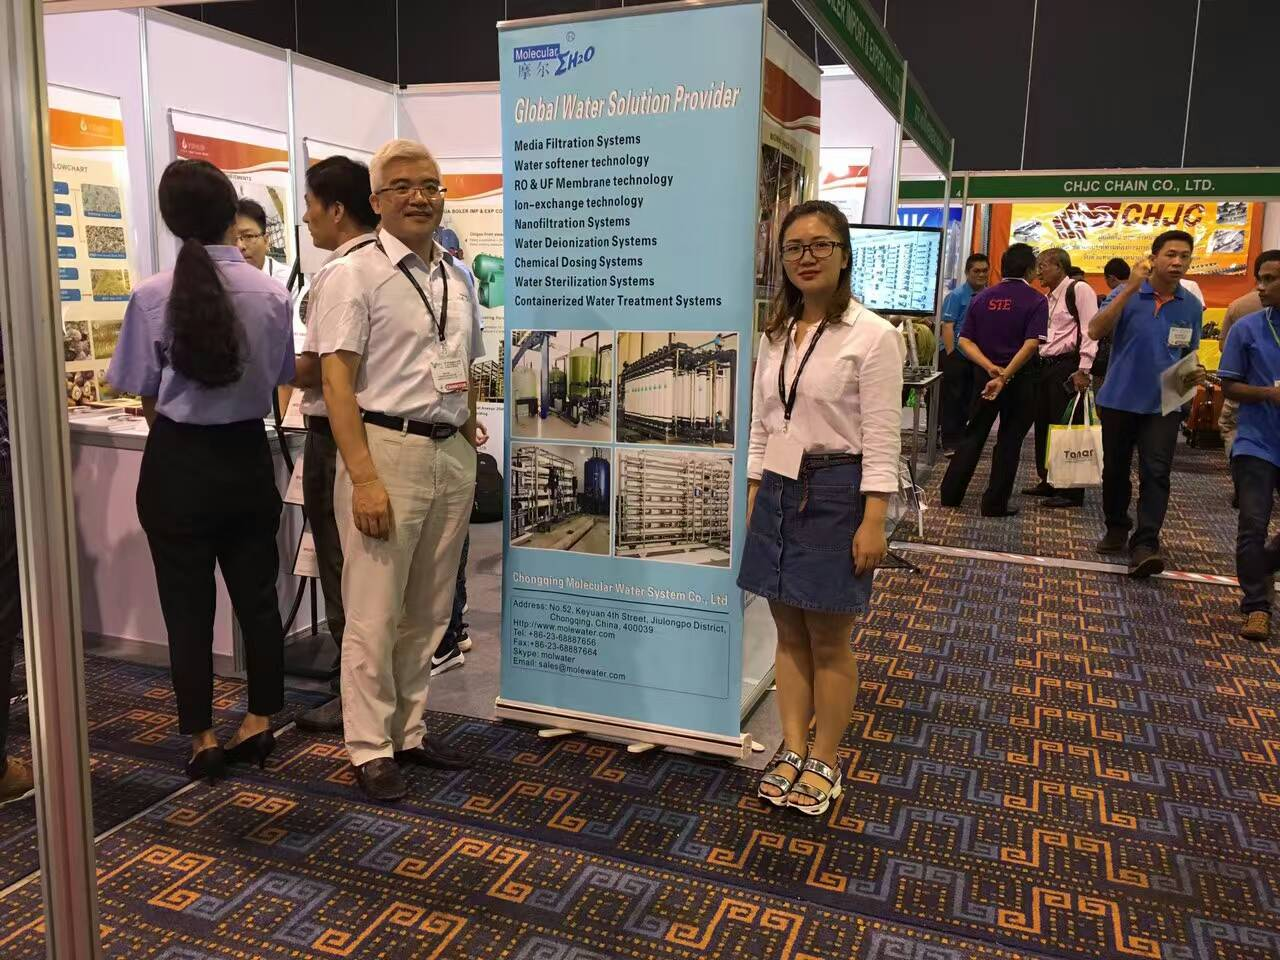 MolecuLar attend the exhition in Thailand